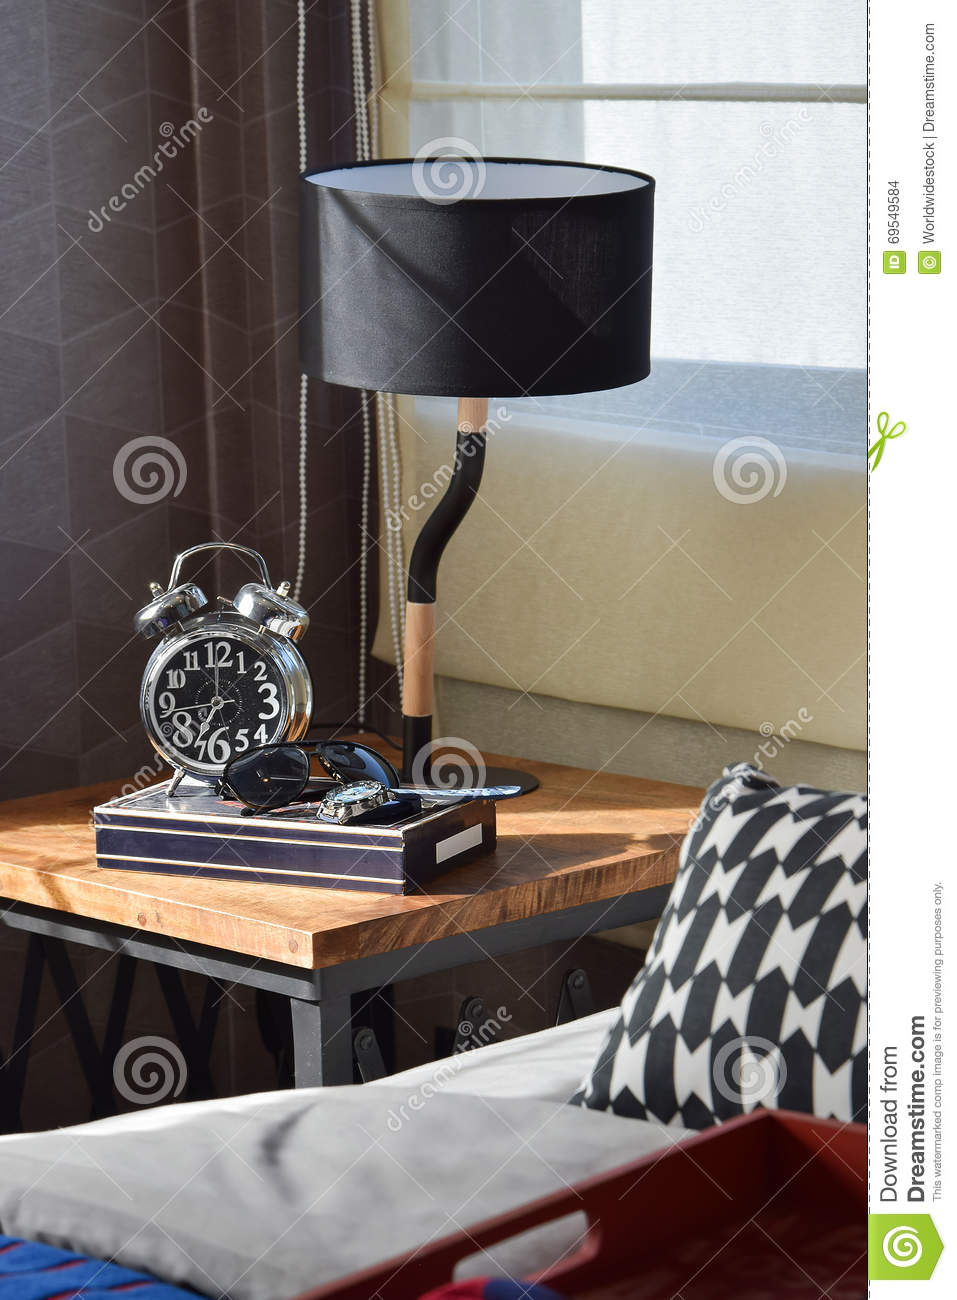 Modern Bedroom With Black Lamp And Alarm Clock On Wooden Table At Home